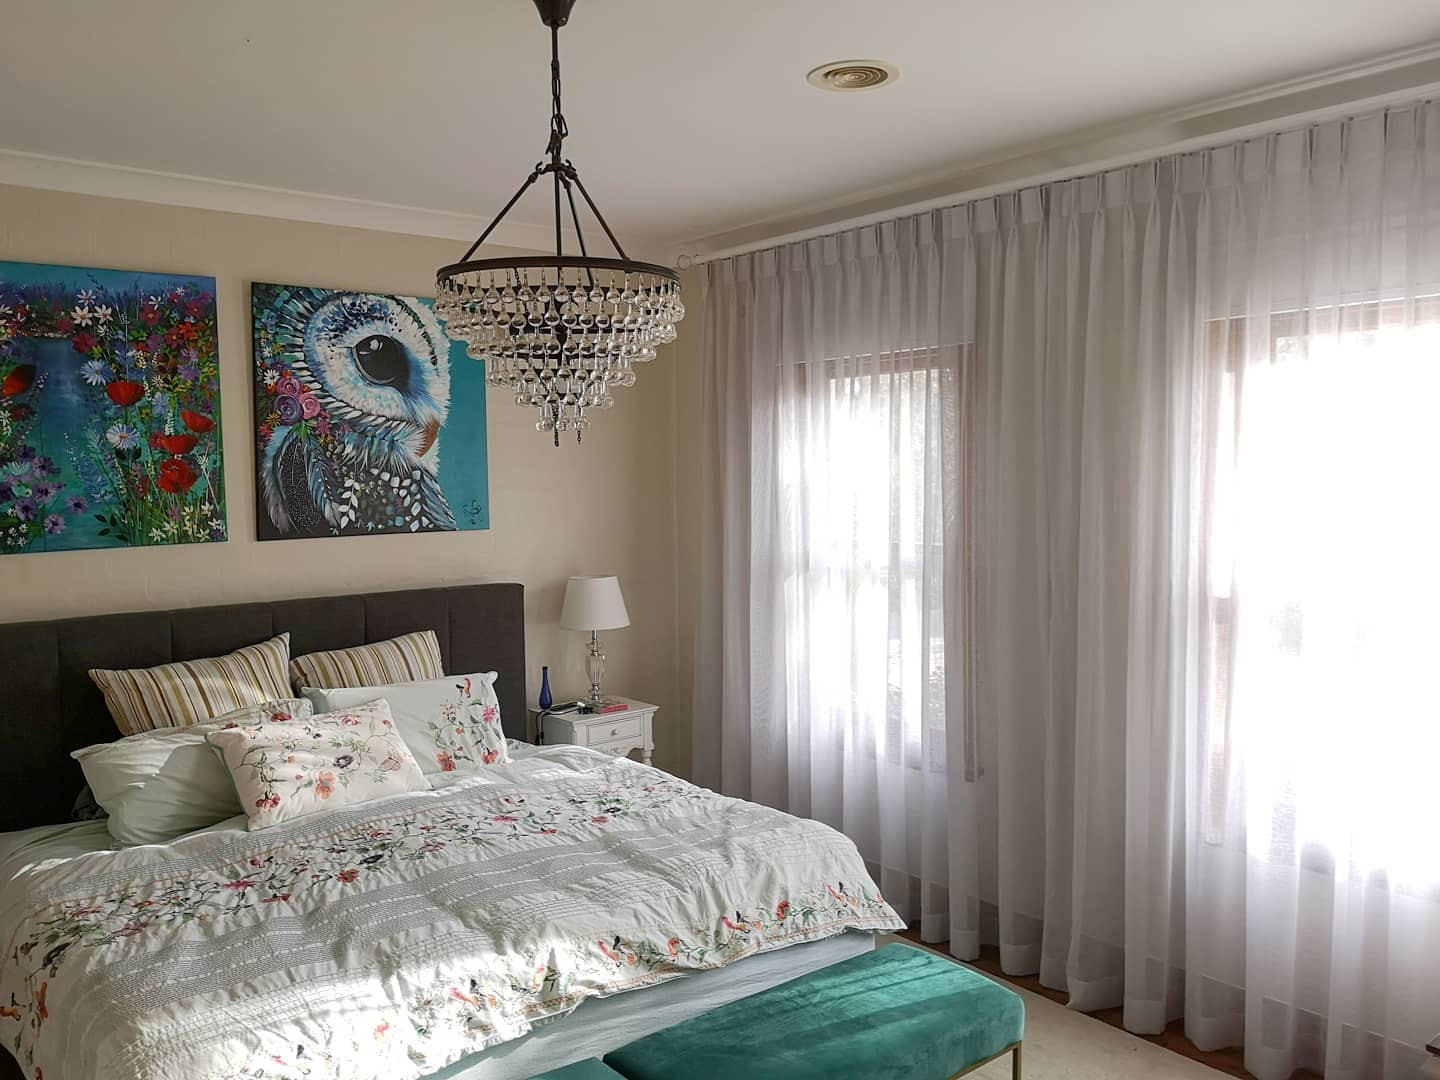 Pinch pleat sheer curtains on a classic rod over blockout roller blinds